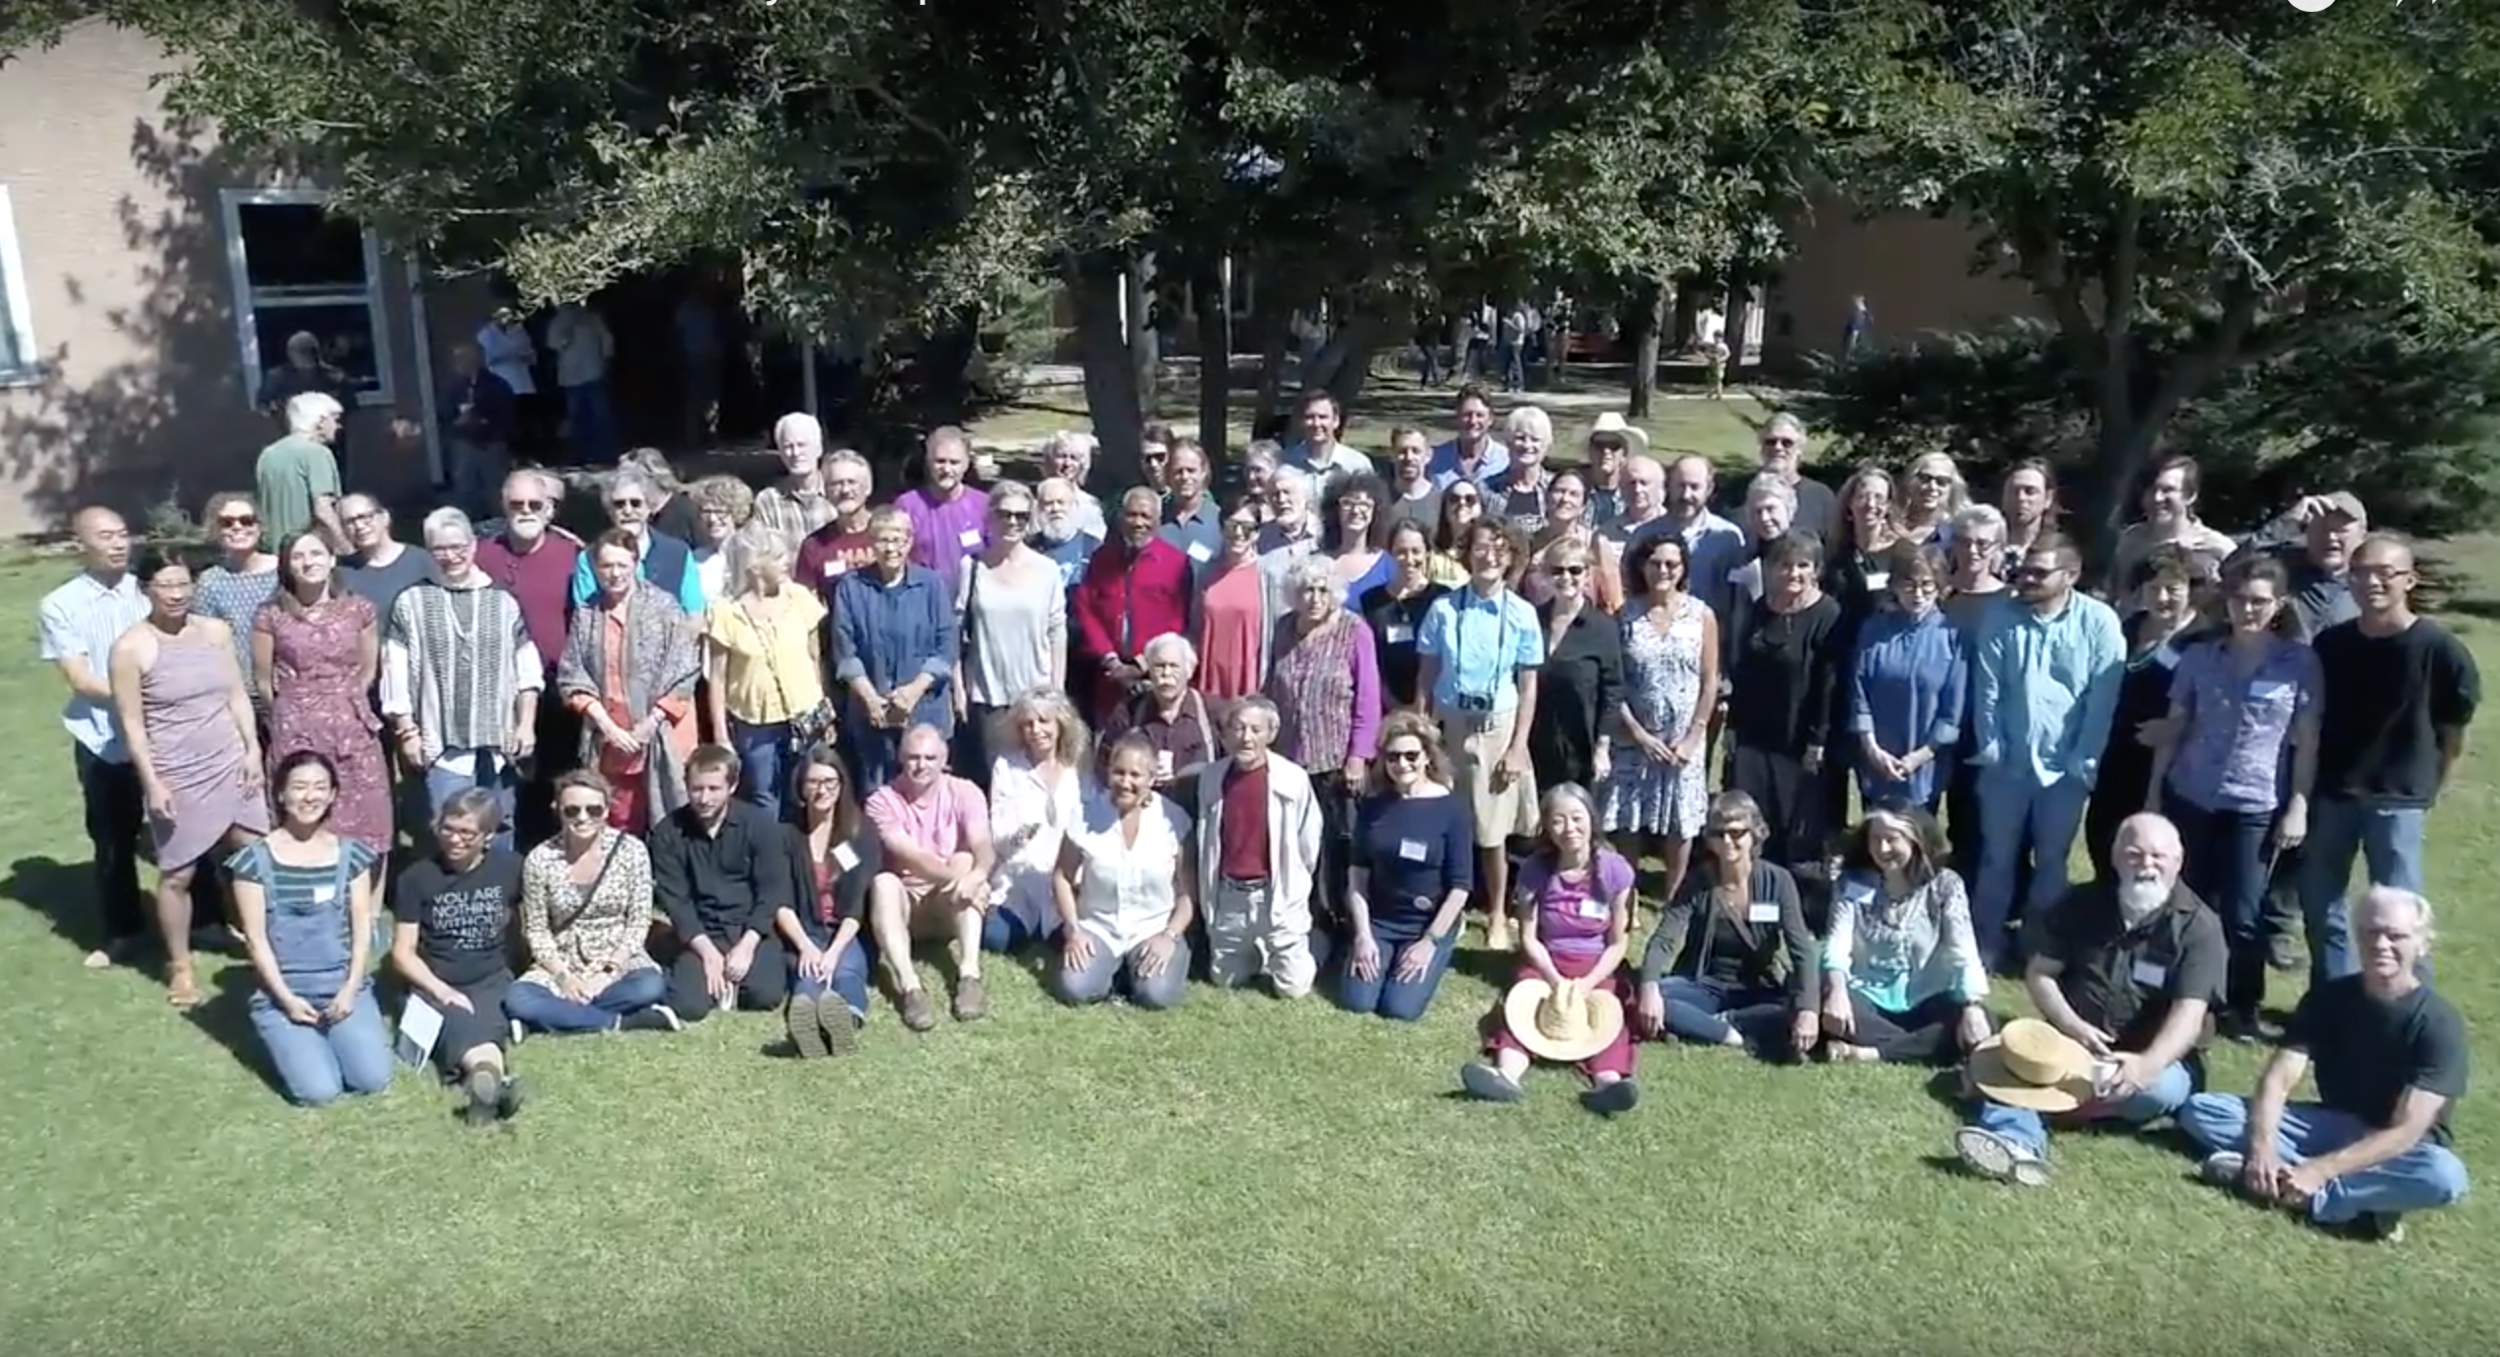 RAIR Residents 50th Anniversary Group Photo (video still) - RAIR 50th reunion at The Historic Studios on Berrendo Rd., Roswell, NM. 10/7/17. Pictured here, several generations of RAIRs gathered together at The Historic Studios to celebrate it's 50 year.  Watch the video.